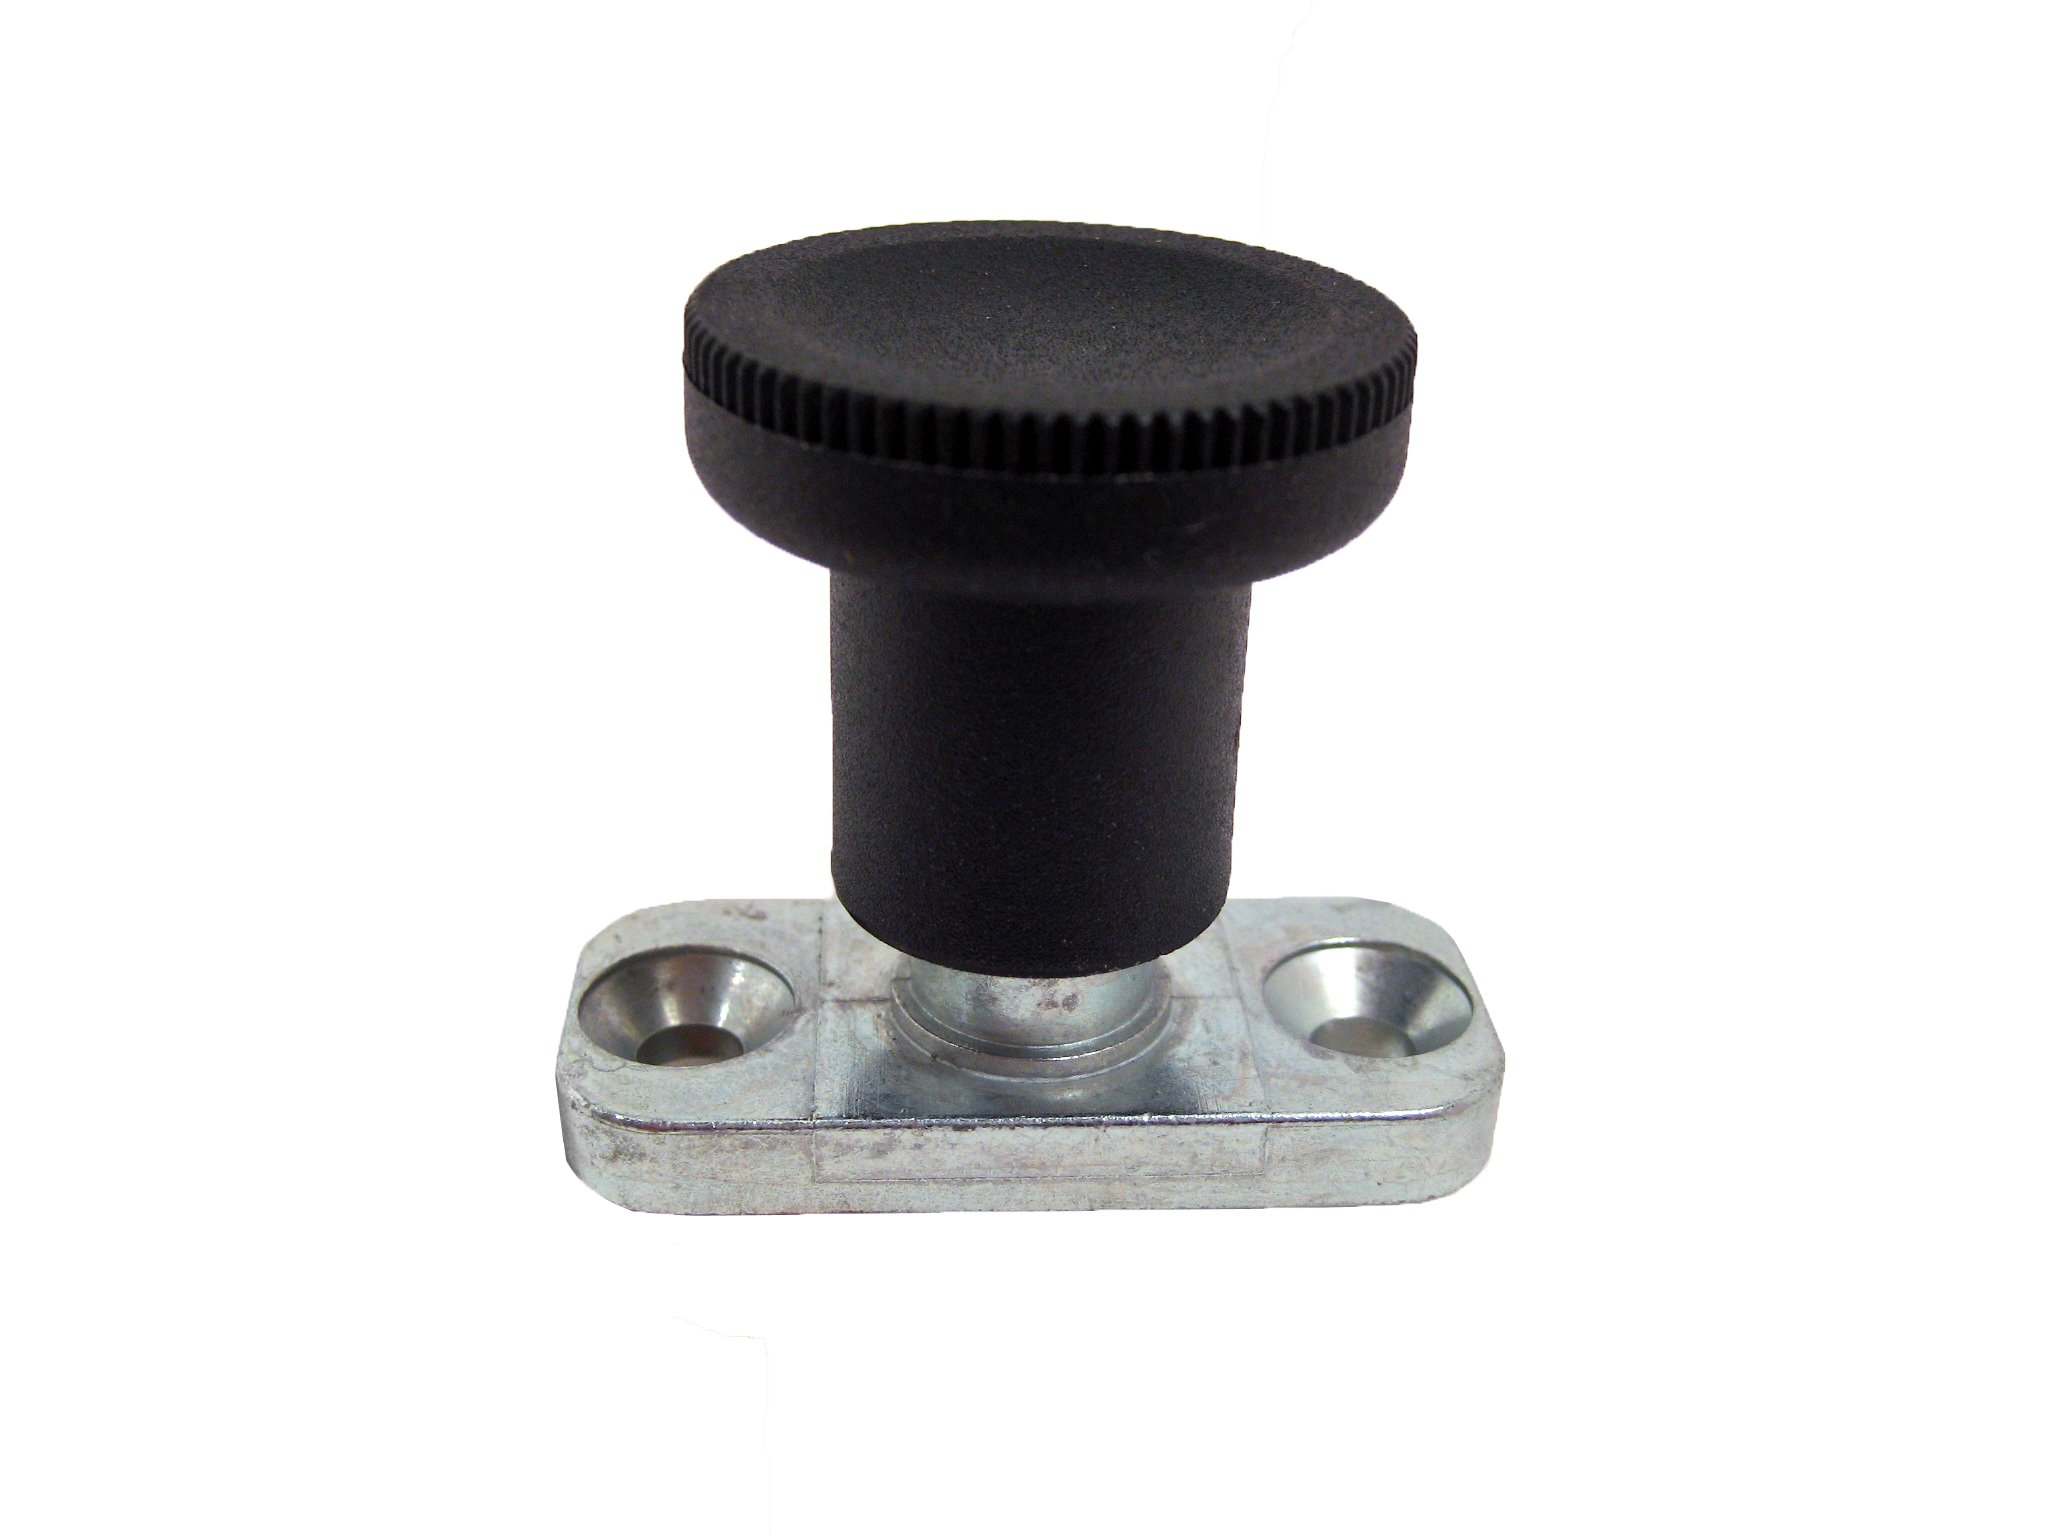 GN 608.1 Series Steel Lock-Out Type Plate Mount Indexing Plunger, 10mm Hub Diameter, 37mm Overall Length